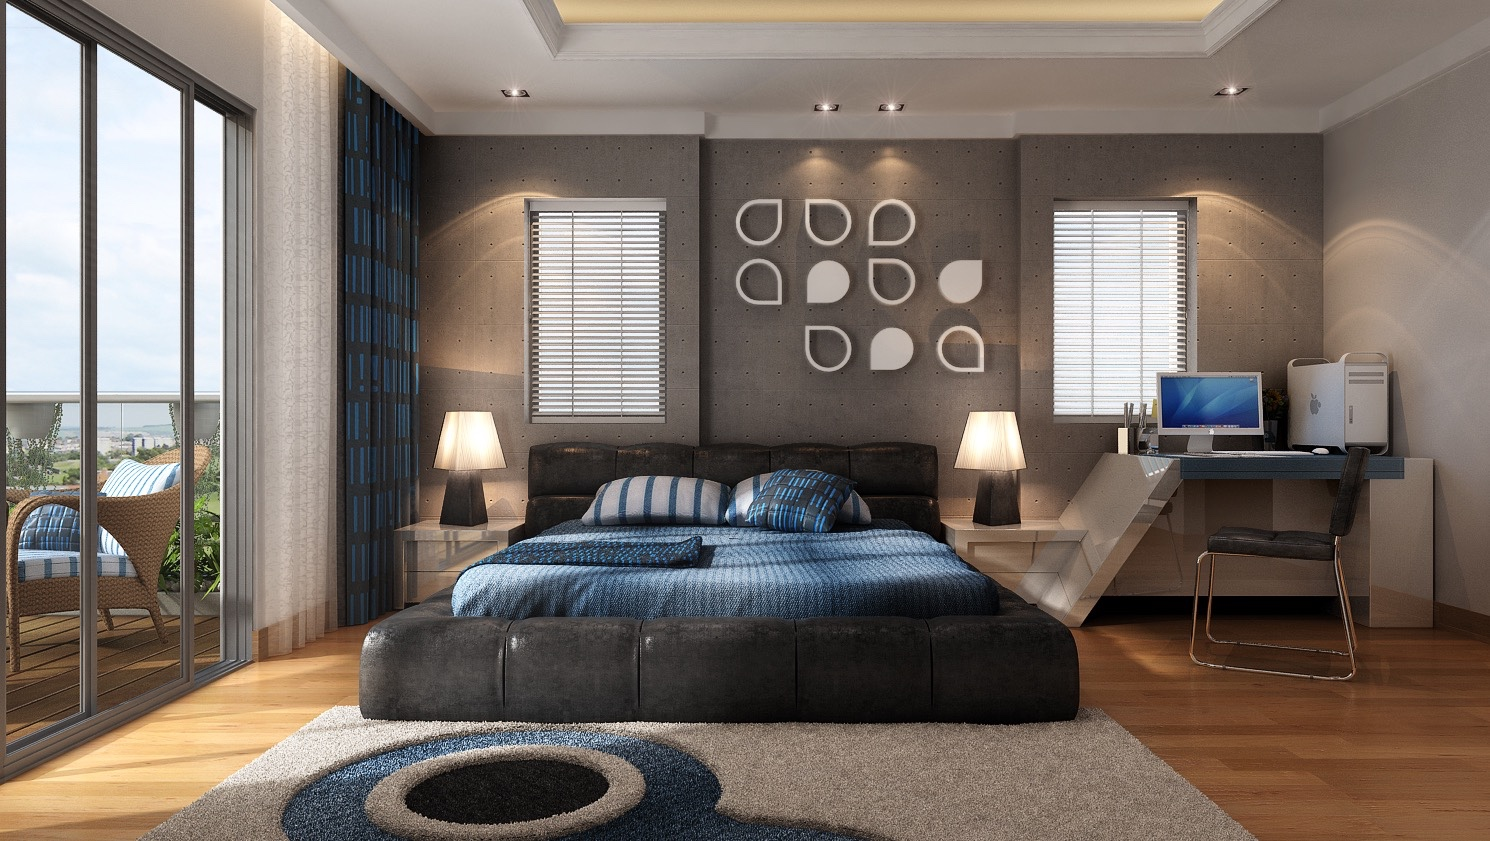 21 cool bedrooms for clean and simple design inspiration for Best bed design images